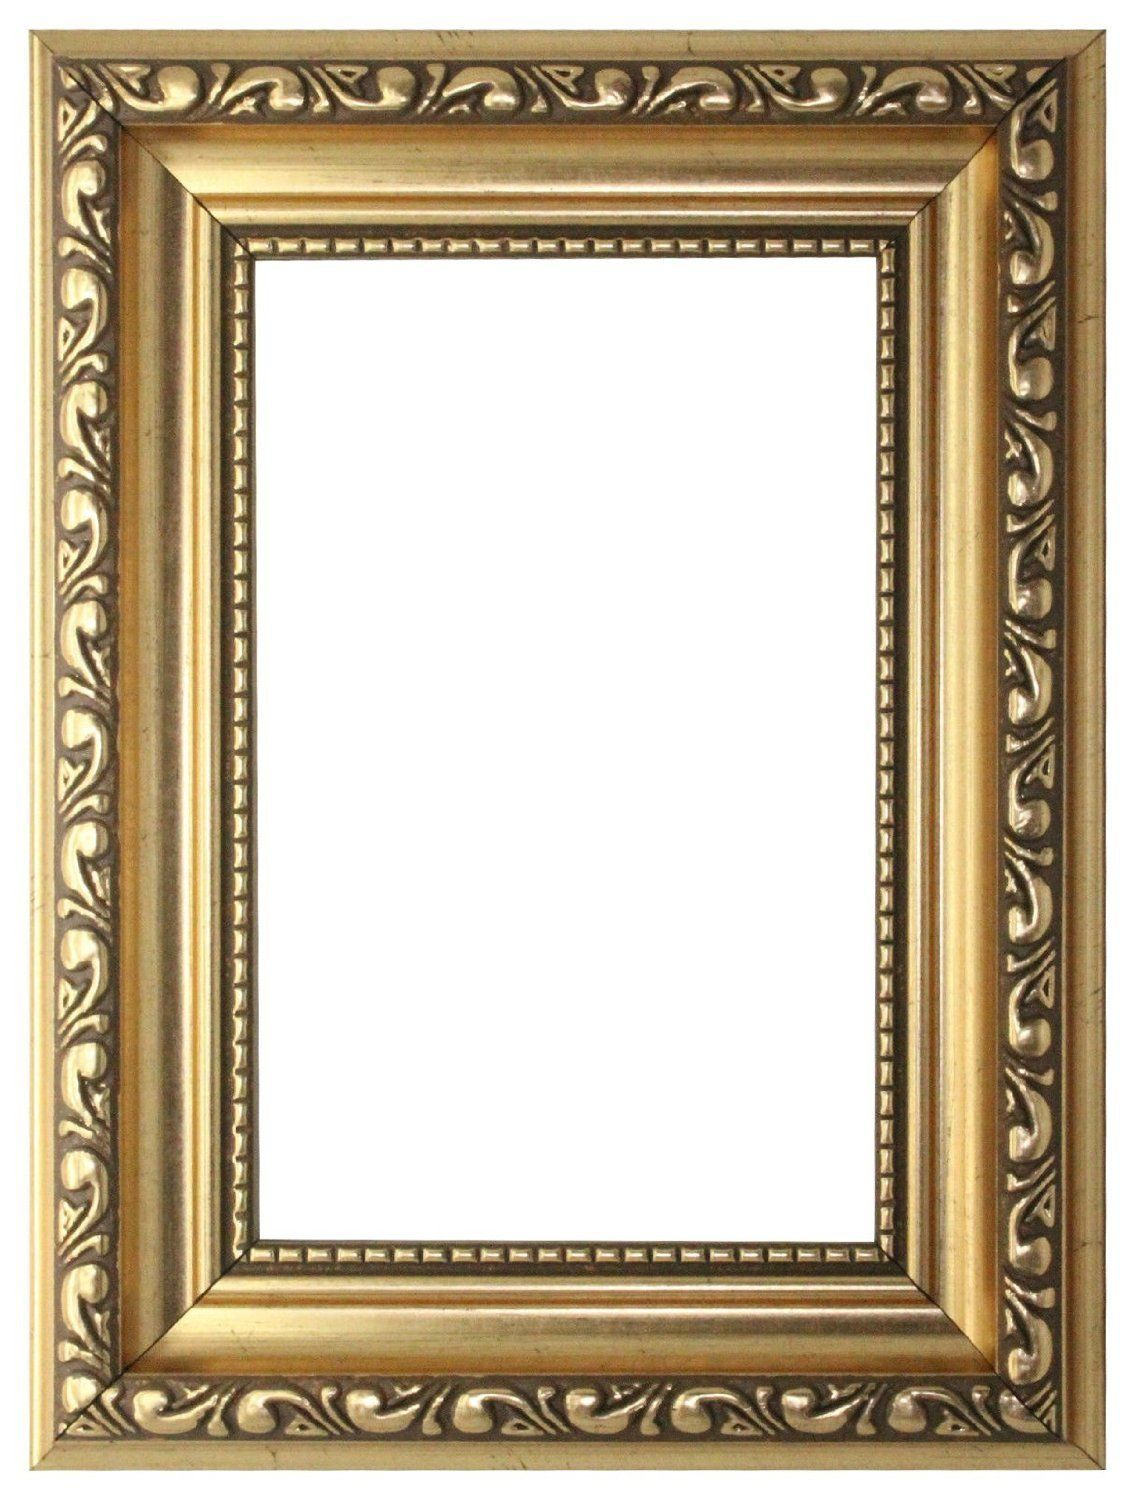 Gold a1 ready to hang ornate shabby chic picturephotoposter gold a1 ready to hang ornate shabby chic picturephotoposter frame with jeuxipadfo Gallery